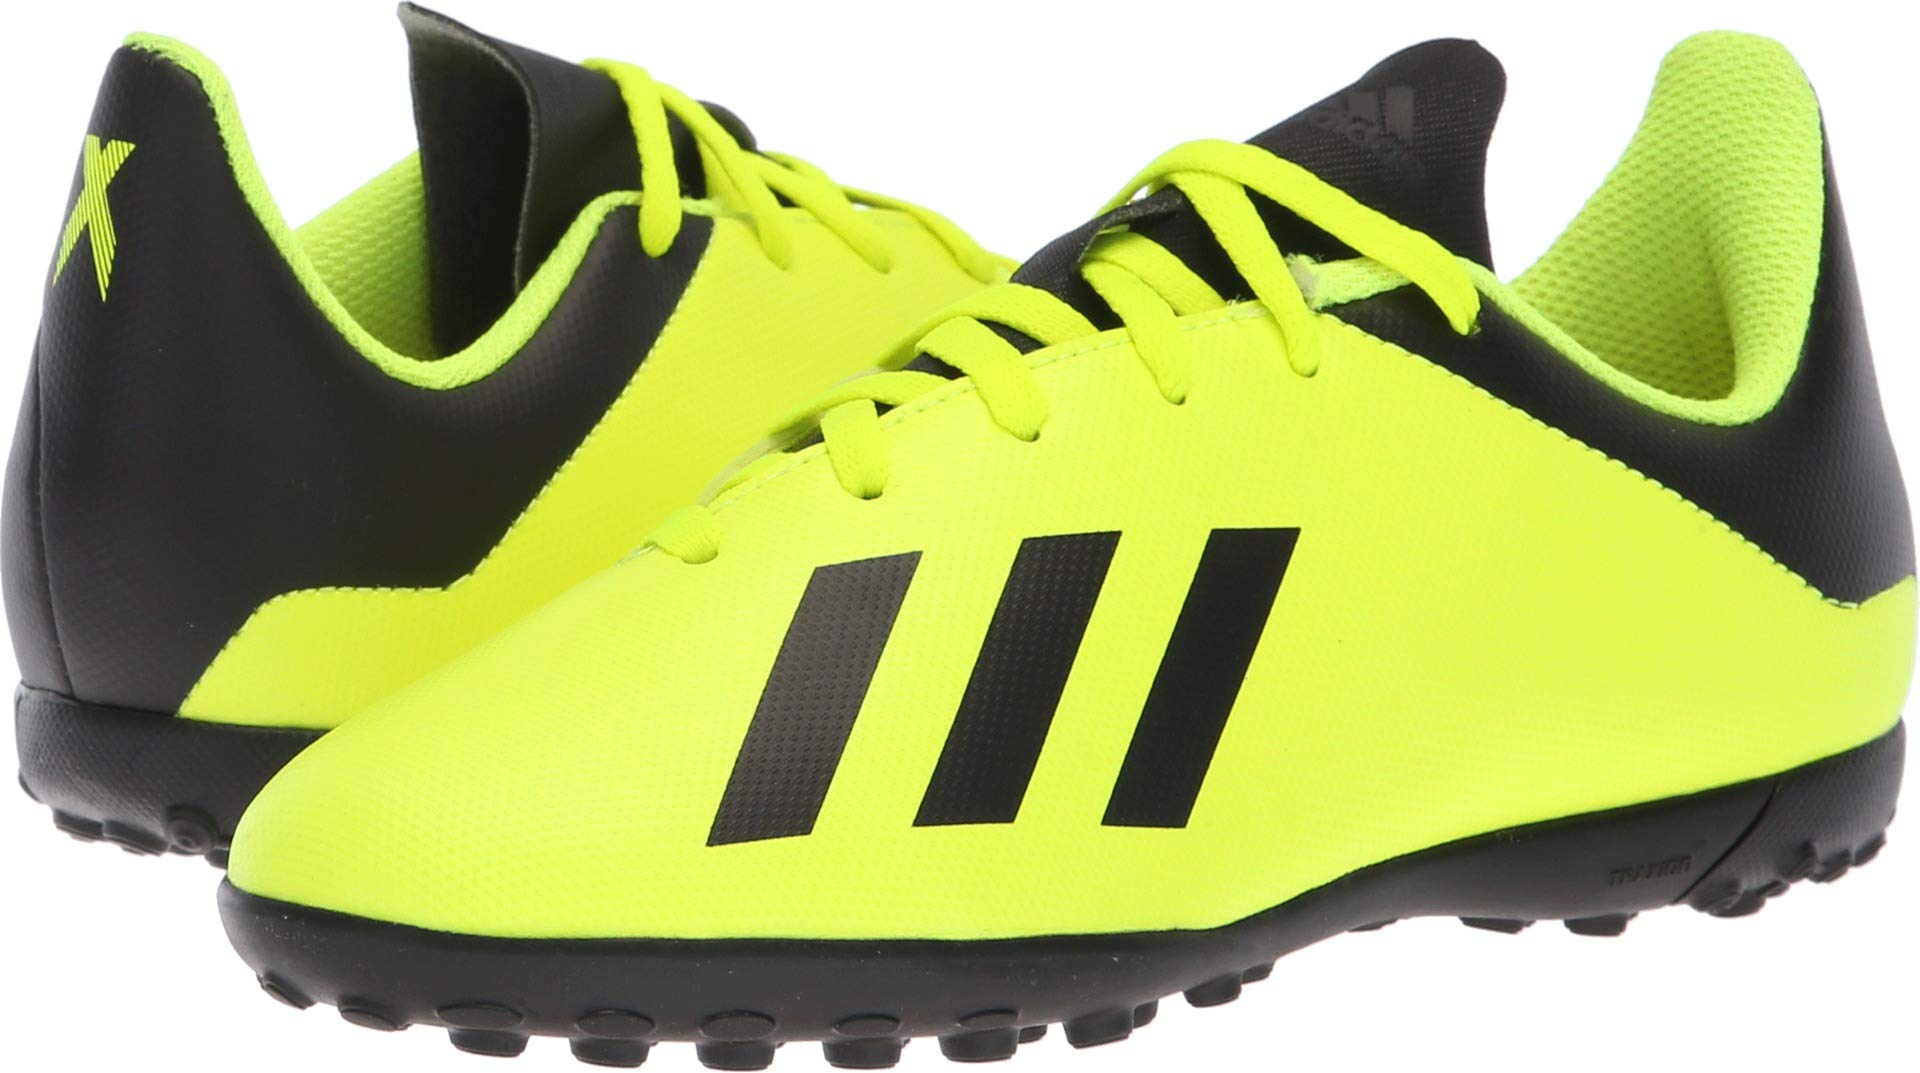 adidas Unisex-Kids X Tango 18.4 Turf Soccer Shoe, Solar Yellow/Black/Solar Yellow, 1.5 M US Little Kid